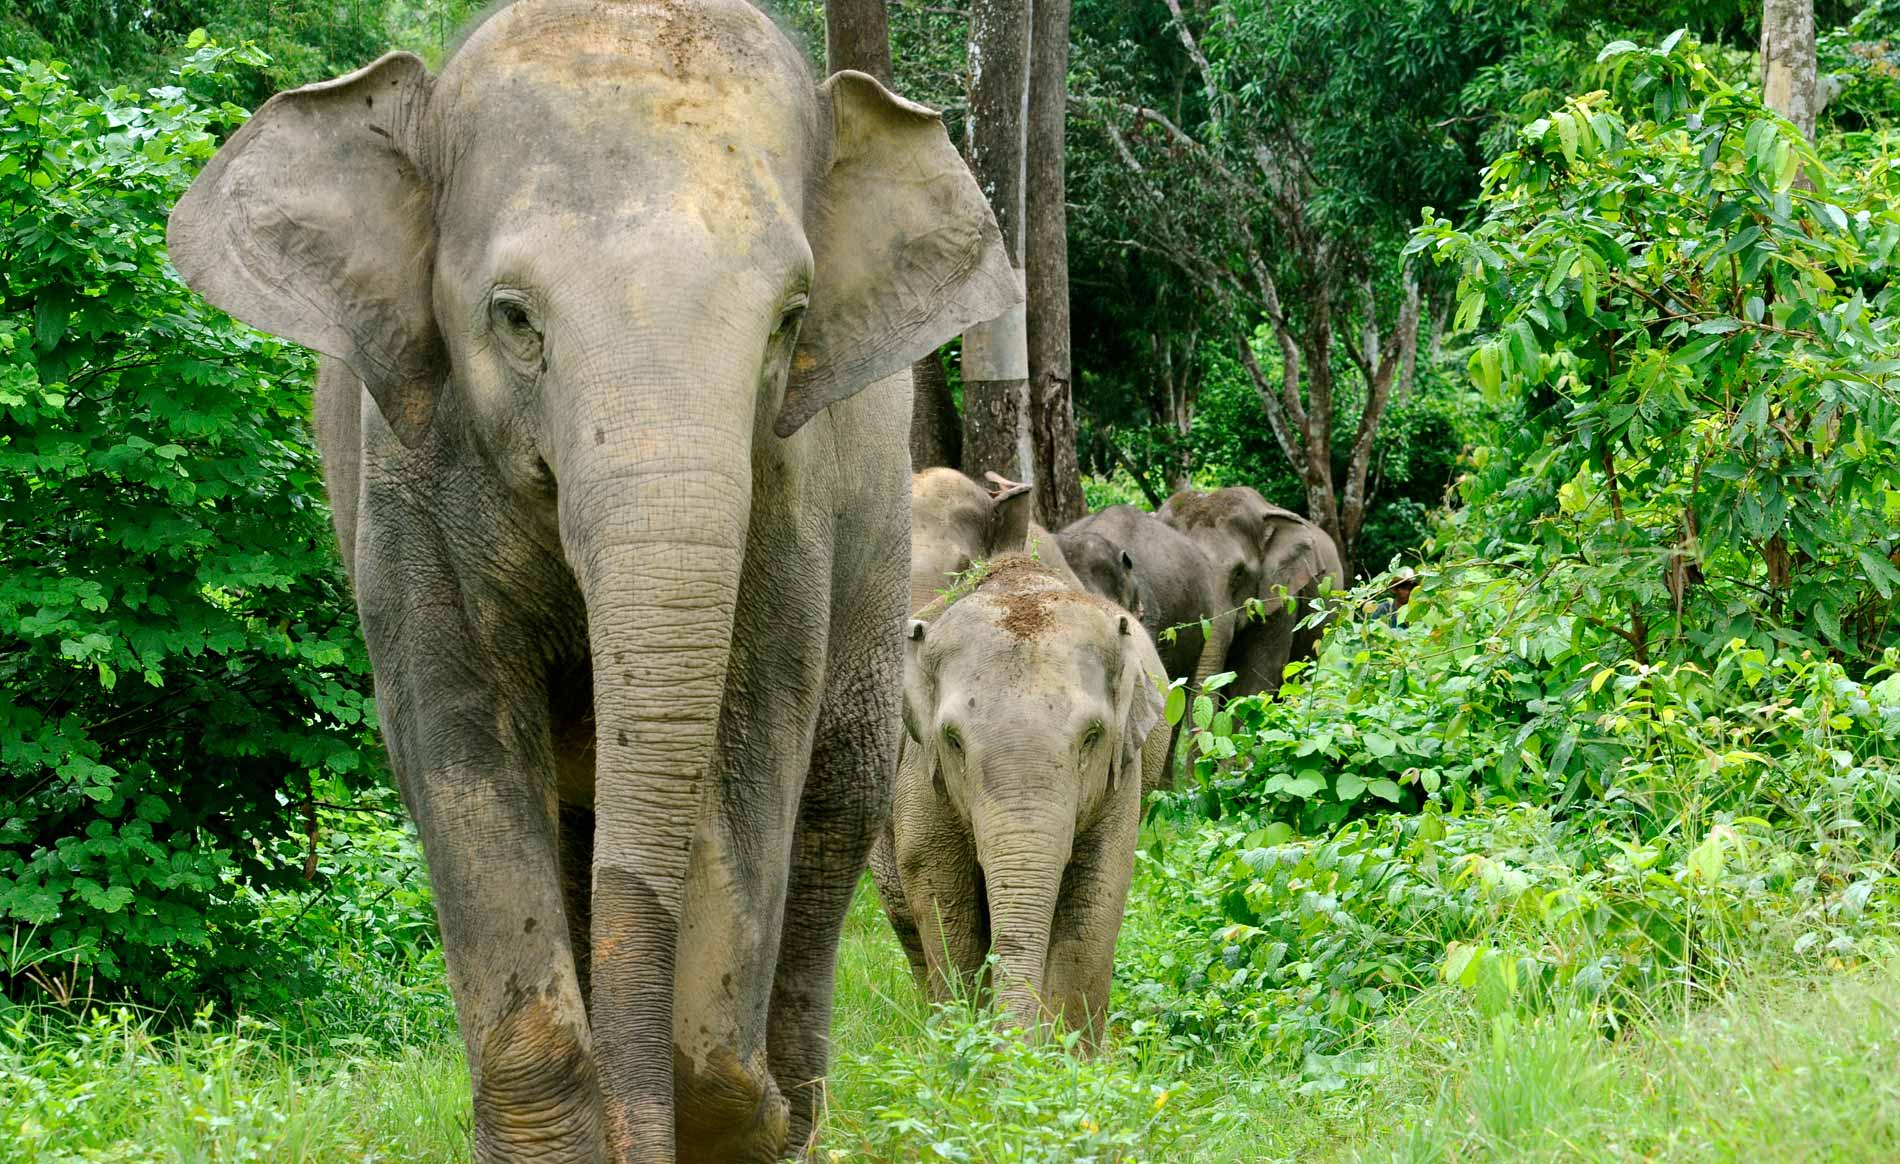 Female elephants are highly social animals who thrive in herds.